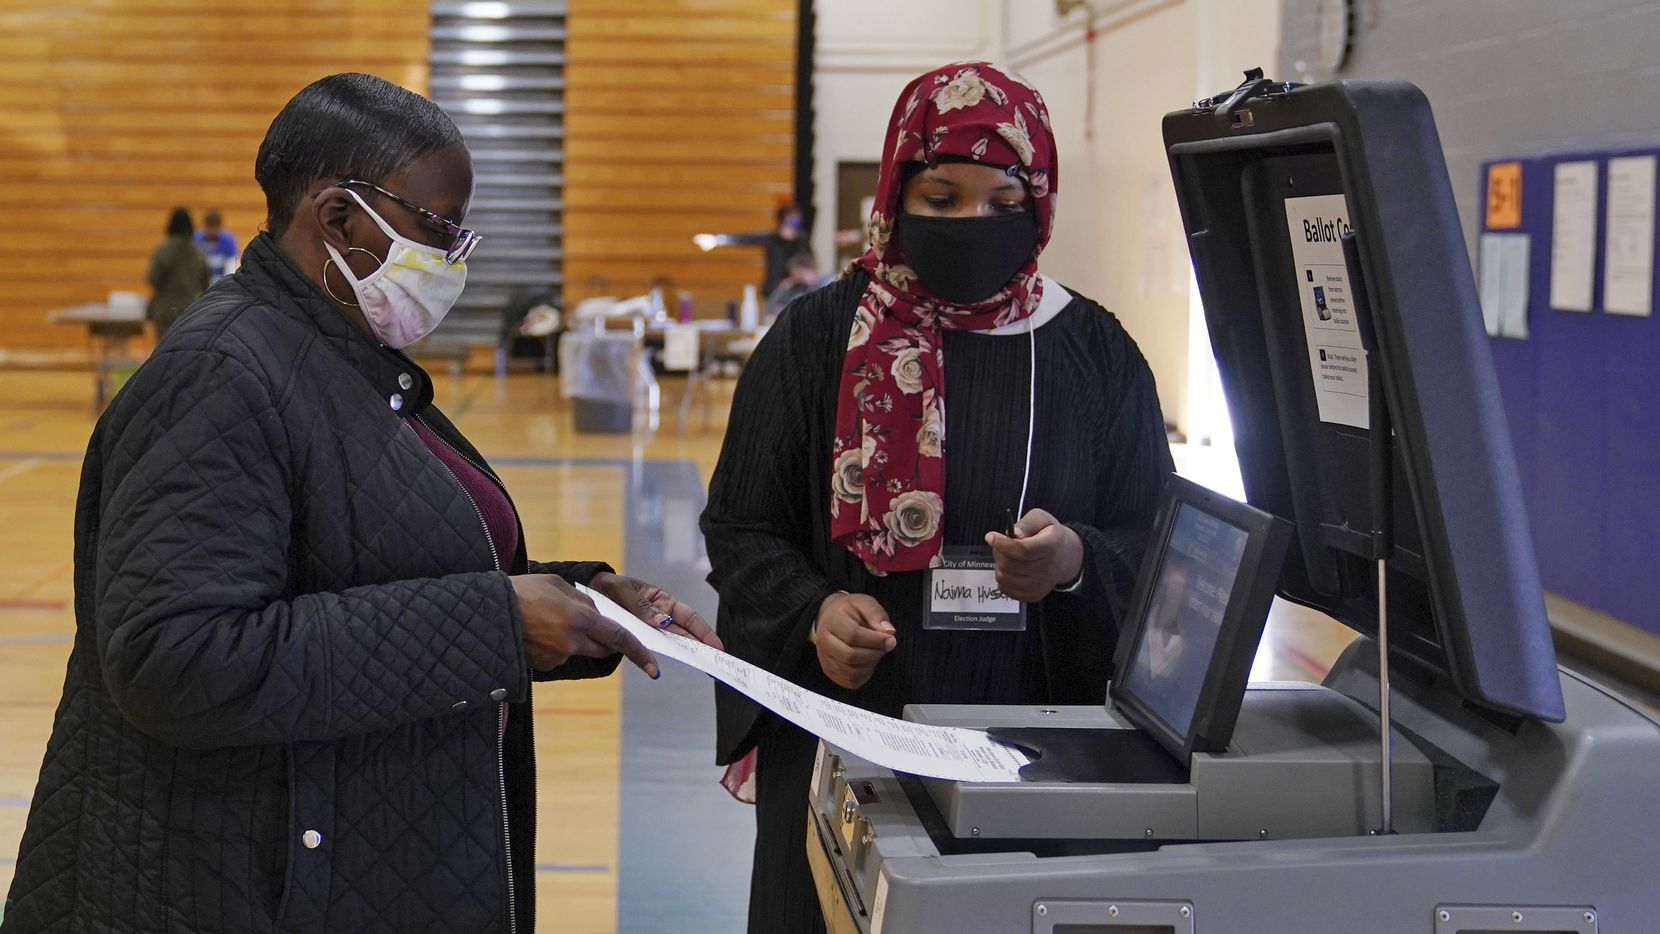 Election judge Naima Hussen watched as Elizabeth Boykin cast her ballot at North High School in Minneapolis on Tuesday.